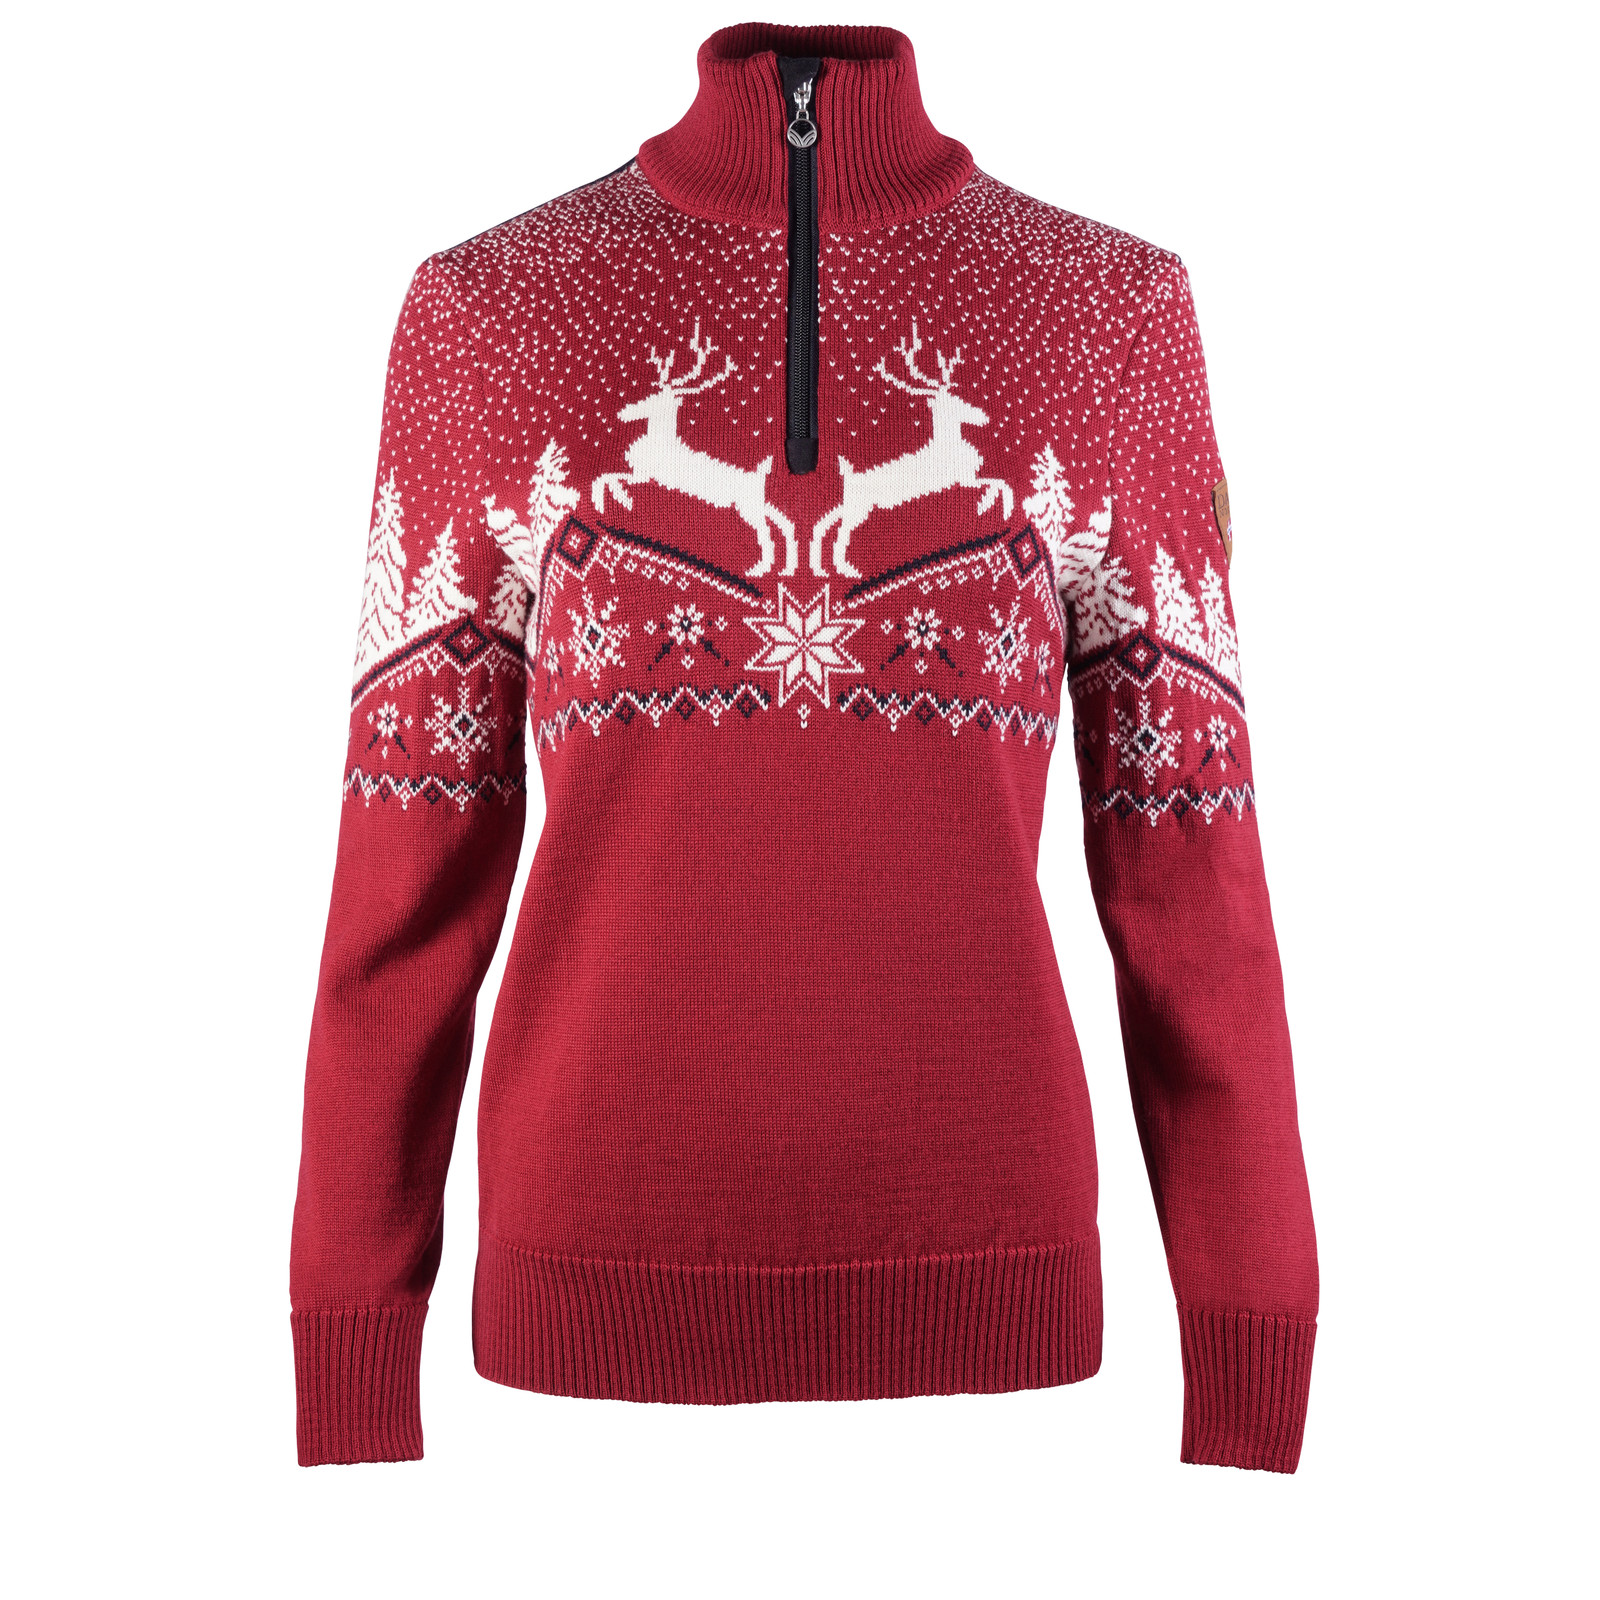 Dale of Norway Dale Christmas Sweater, Ladies - Red Rose/Off White/Navy, 93921-B